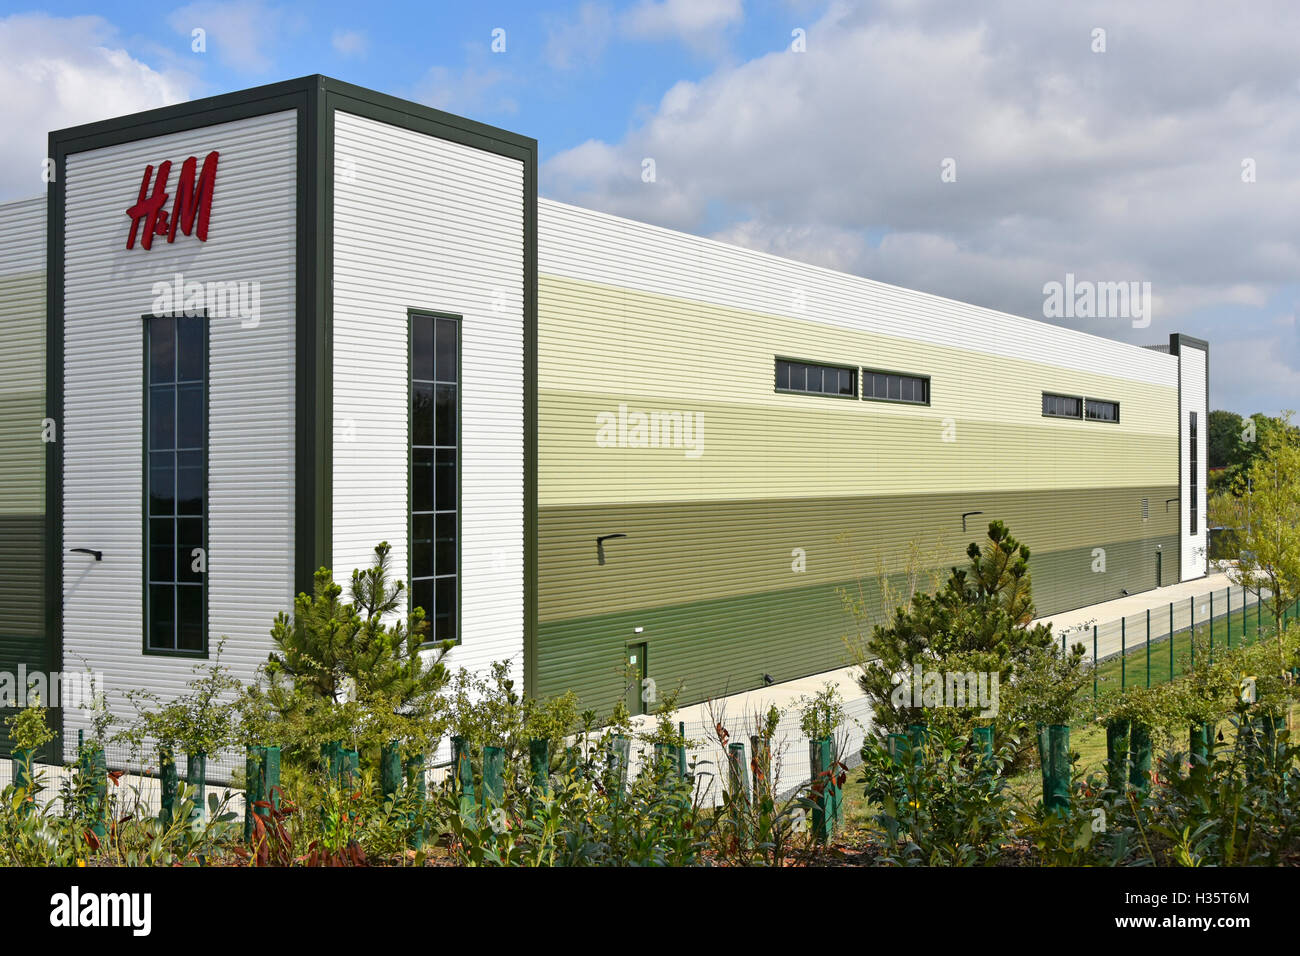 New H&M clothing business distribution warehouse on the Rugby Gateway development centrally located in middle - Stock Image